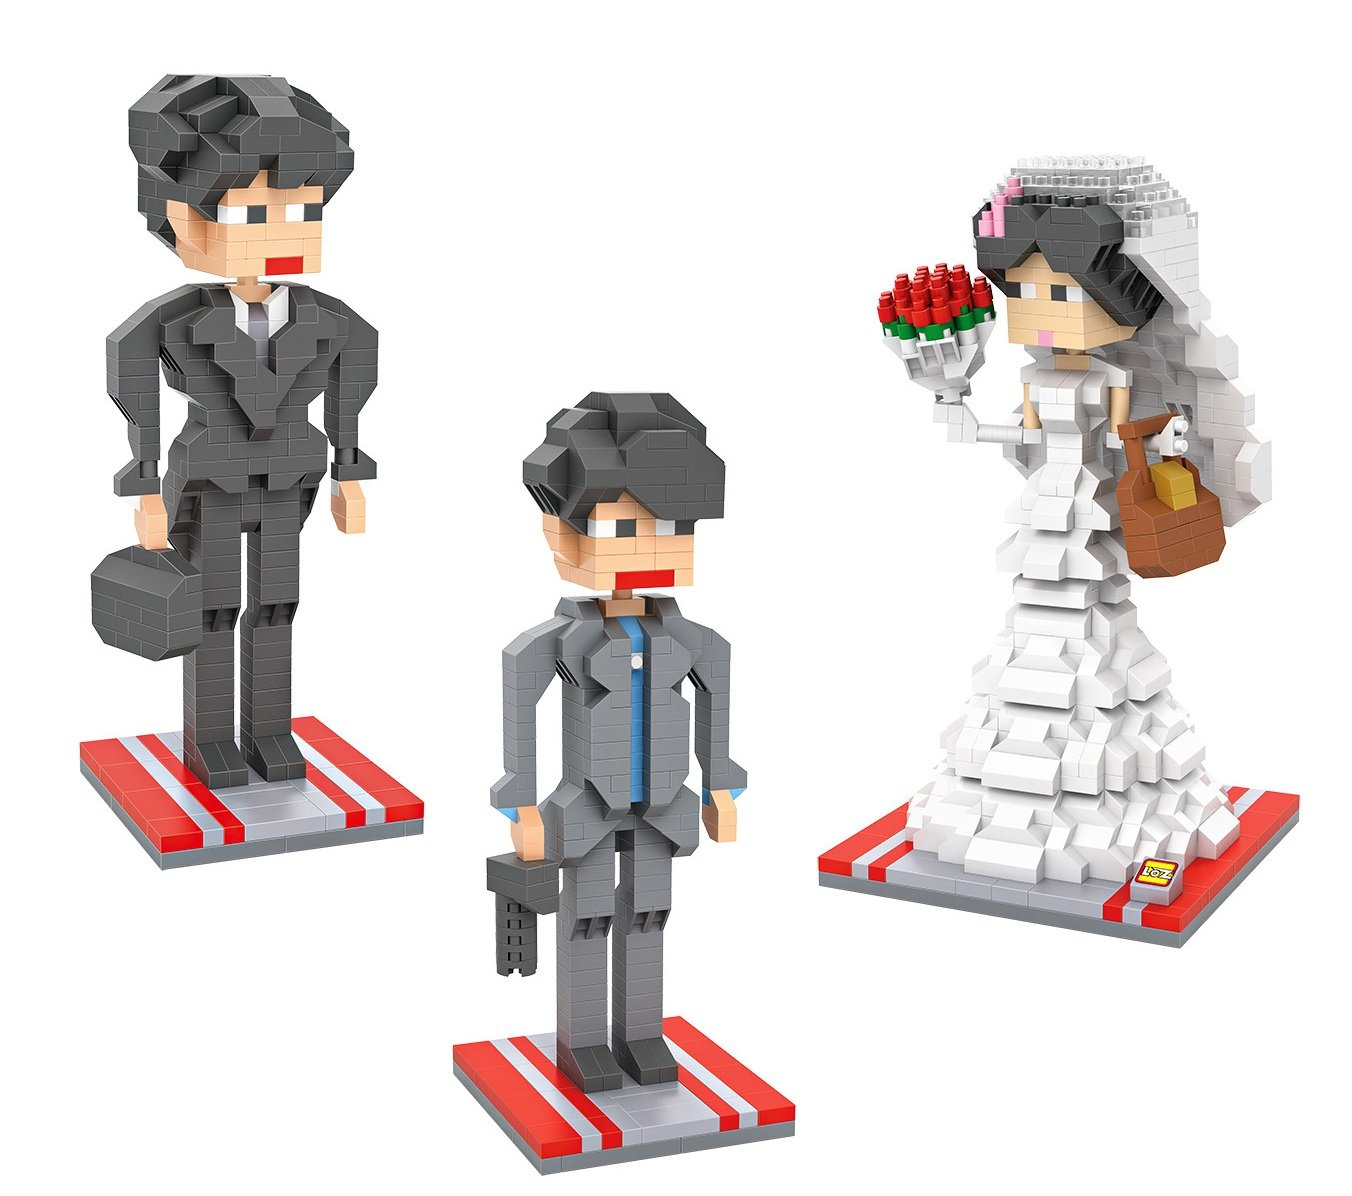 Micro Brickland Wedding Building Brick Kit, Bride and Groom Mini-figures Play Set 3-D Design Small Size Building Brick (1770 Pieces)